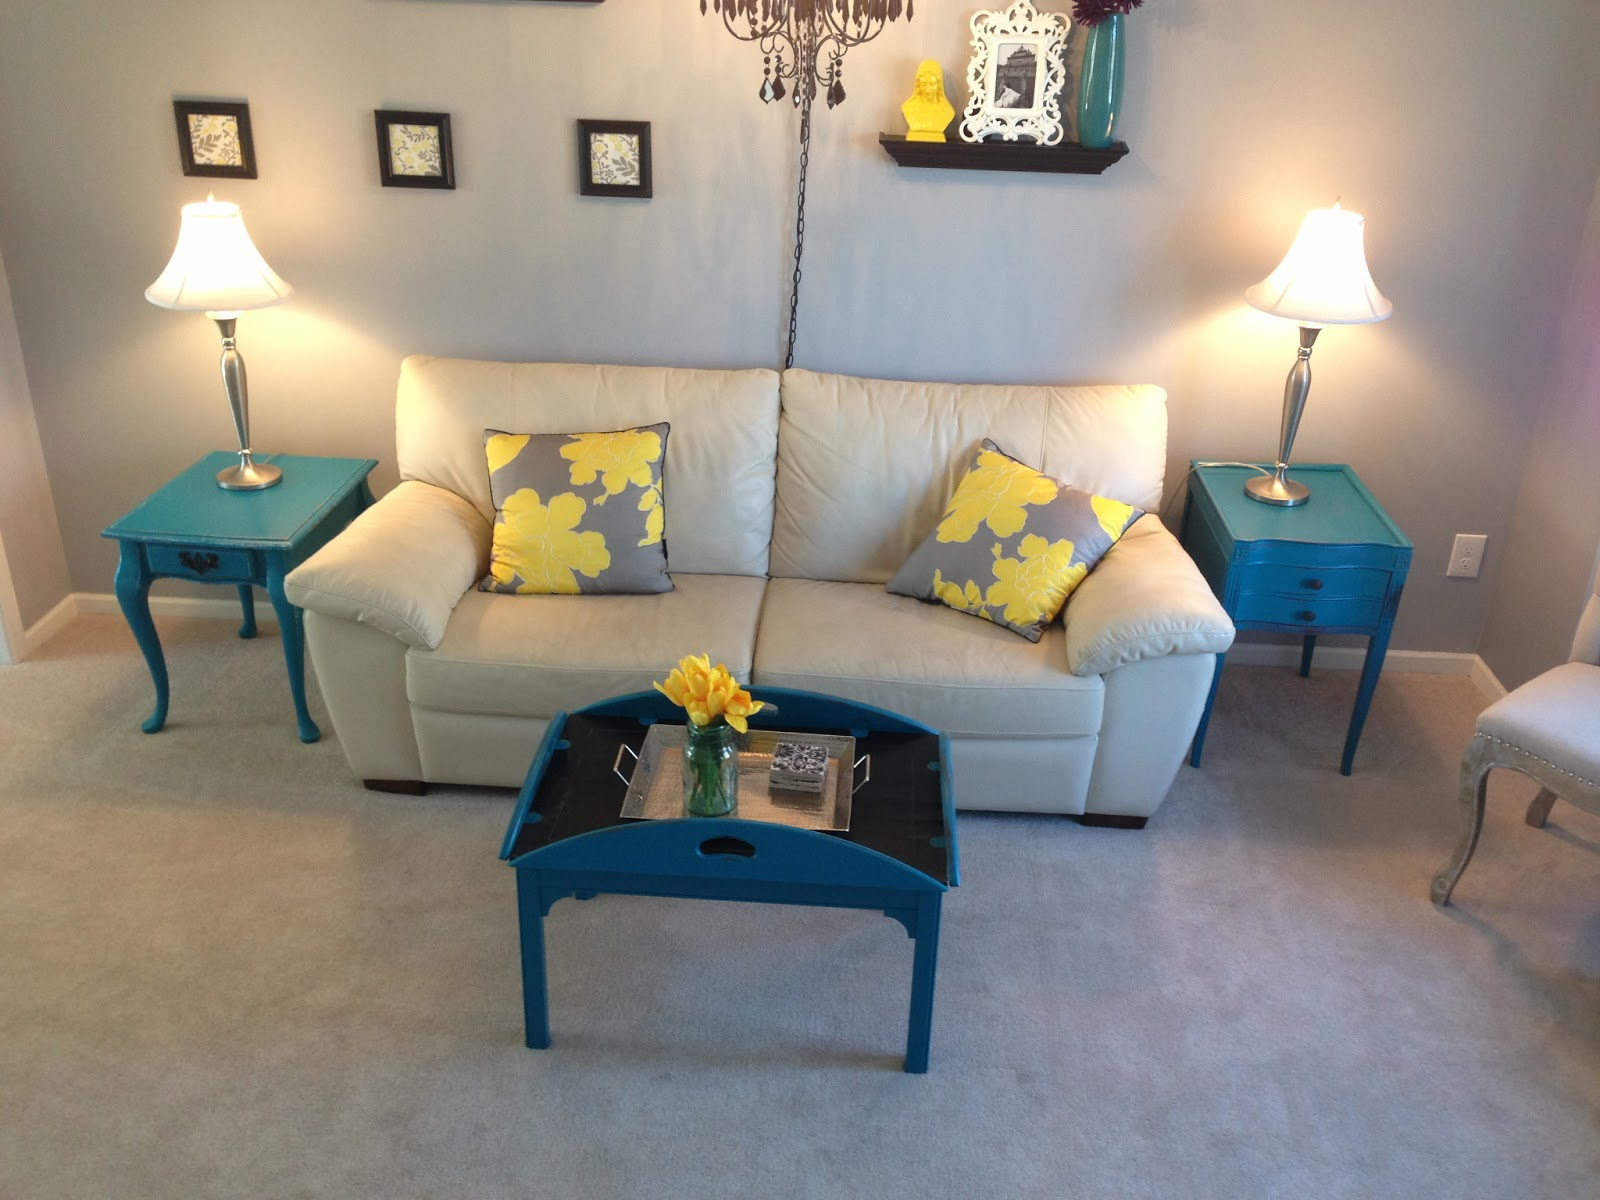 olive + hazel decor co.: distressed turquoise 3 piece living room